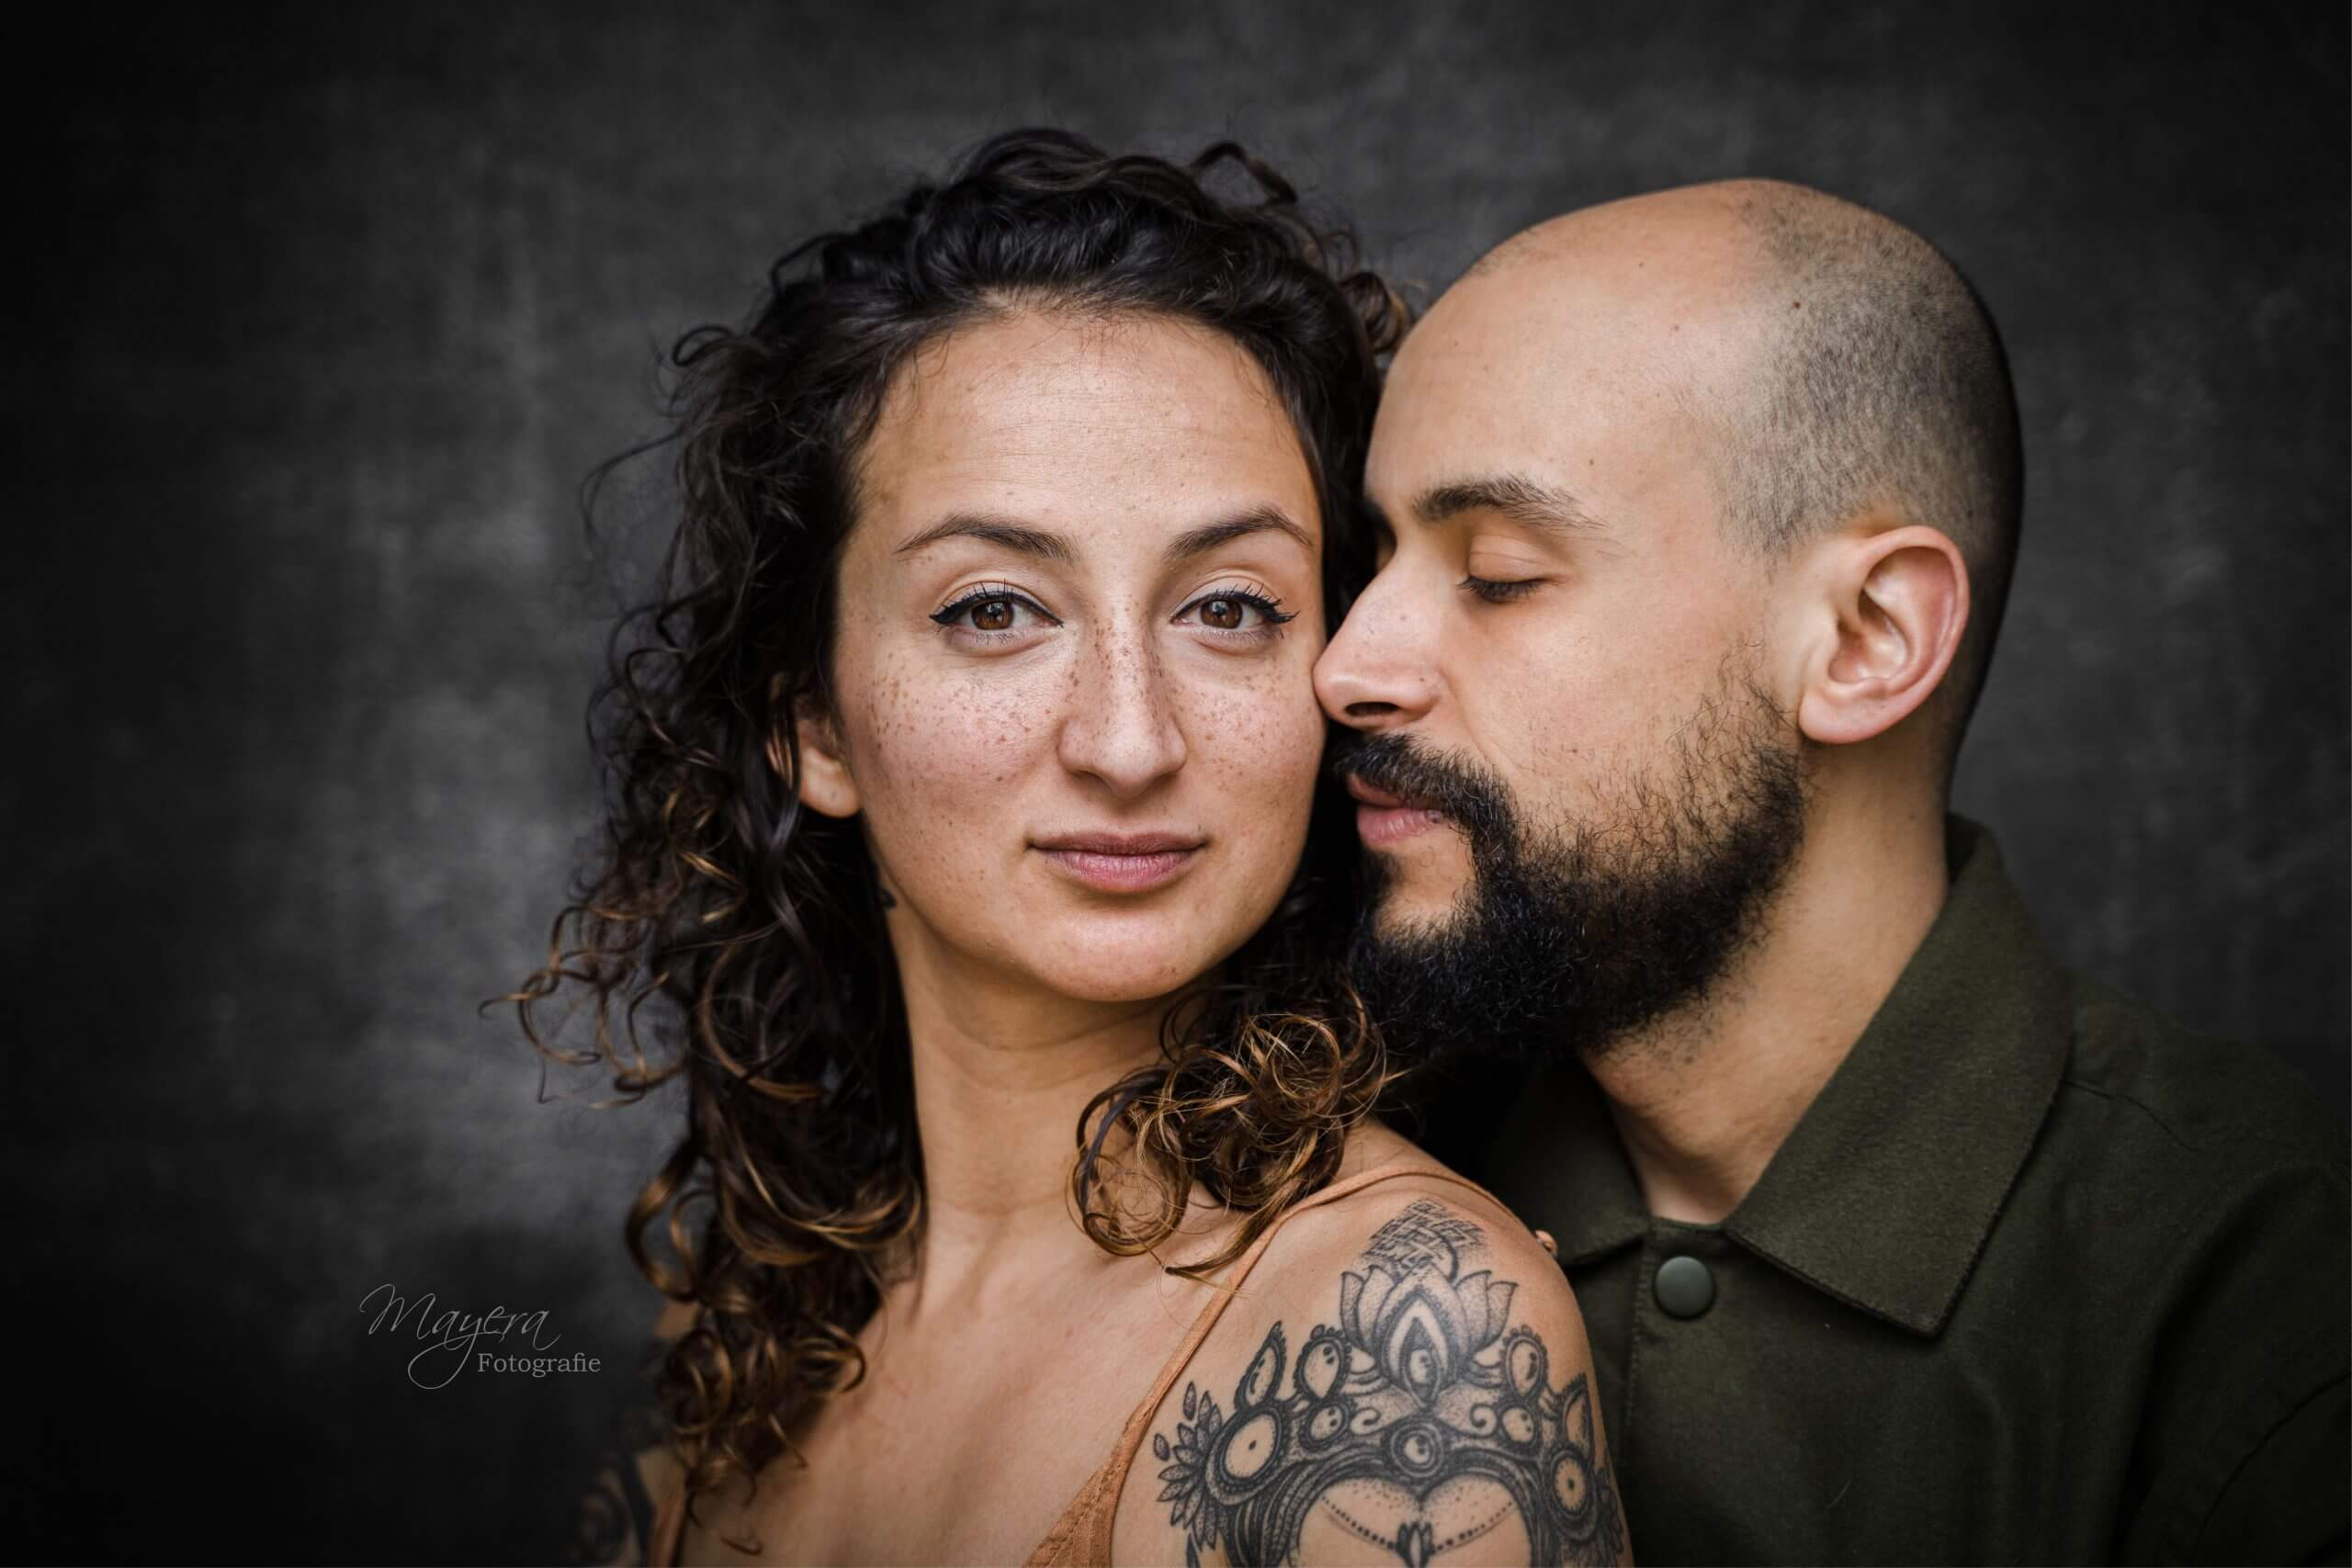 couple love shoot liefde samen partner